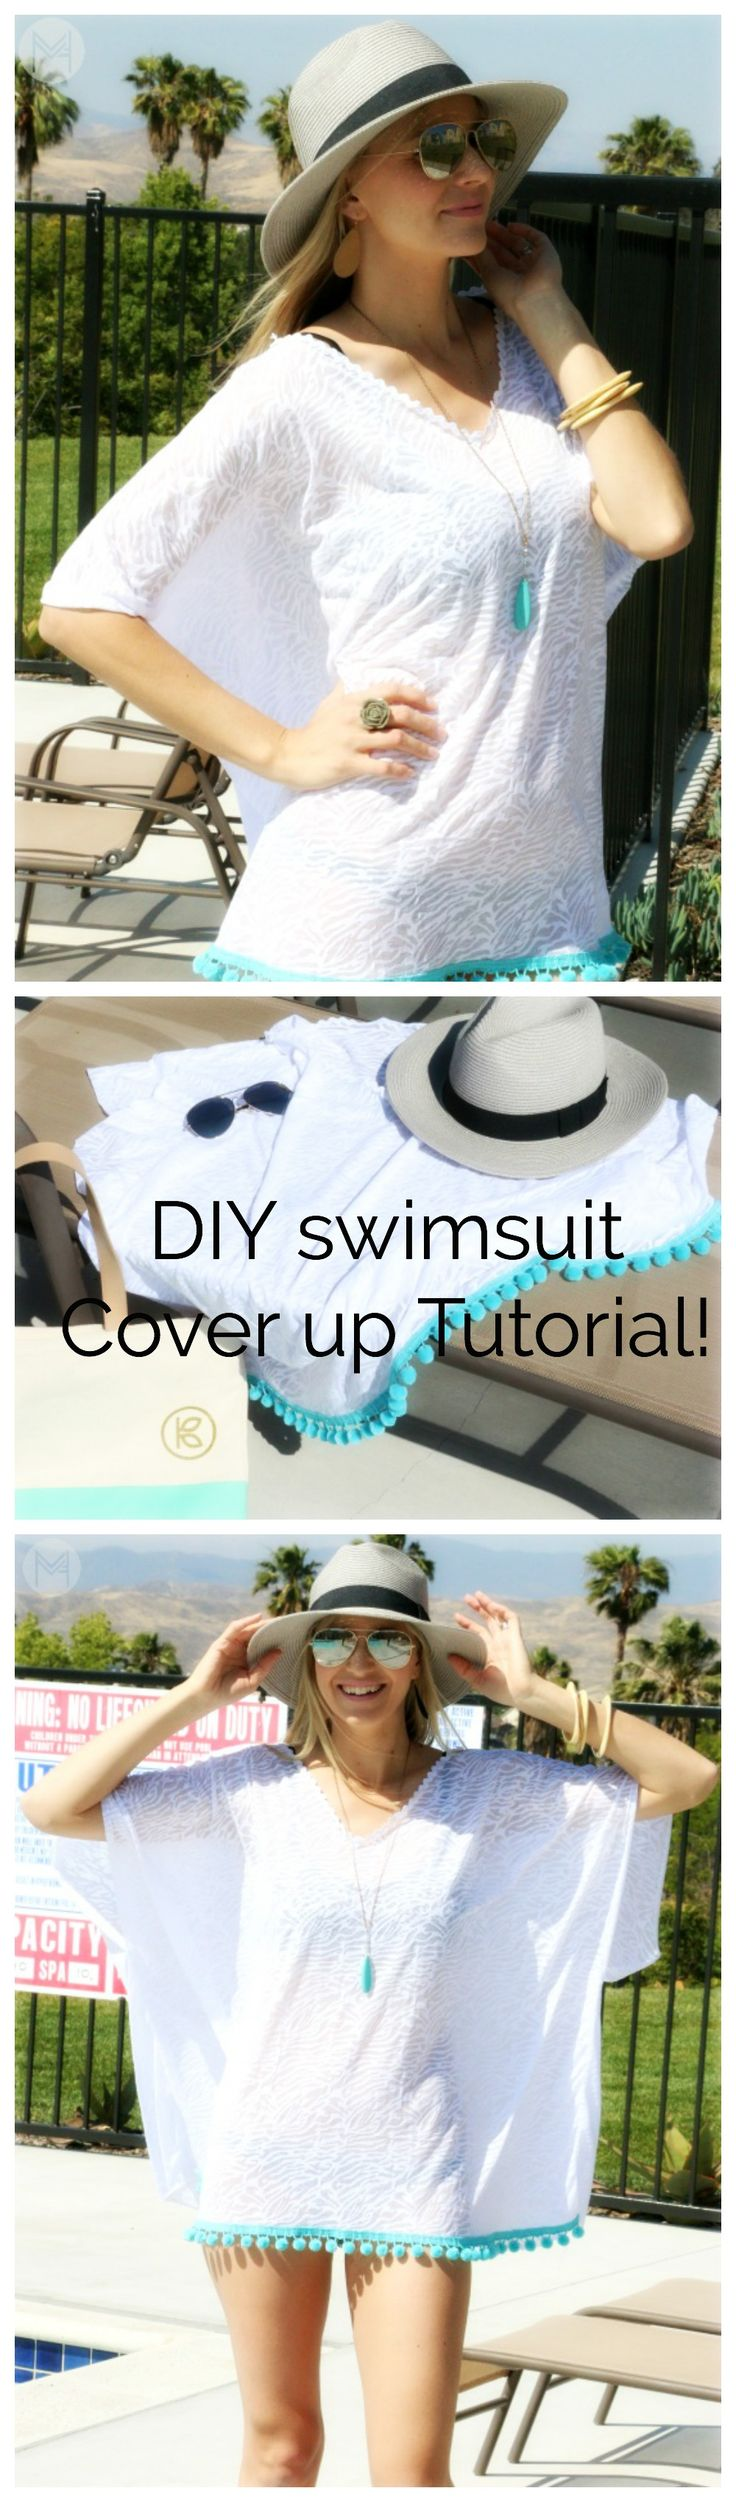 DIY Swimsuit Cover up! A step by step tutorial. Perfect for the beach or pool! www.melaniekham.com